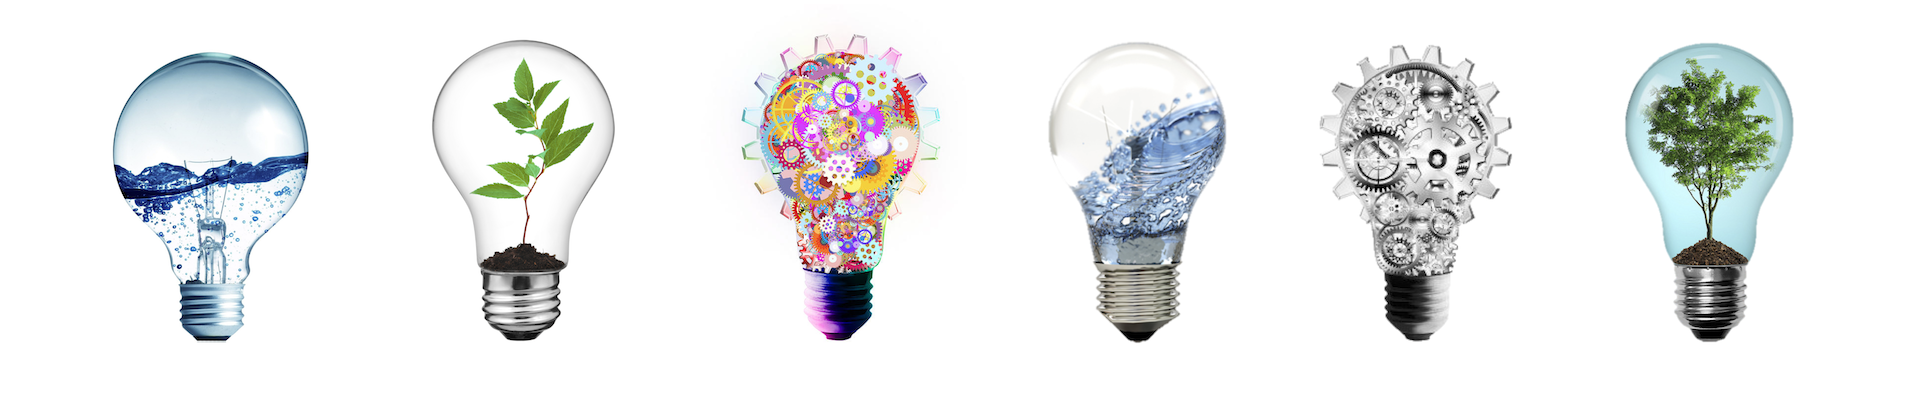 http://thoughtleaders.co.za/wp-content/uploads/2014/05/Innovating-for-a-Thrivable-Future-31-1920x400.png